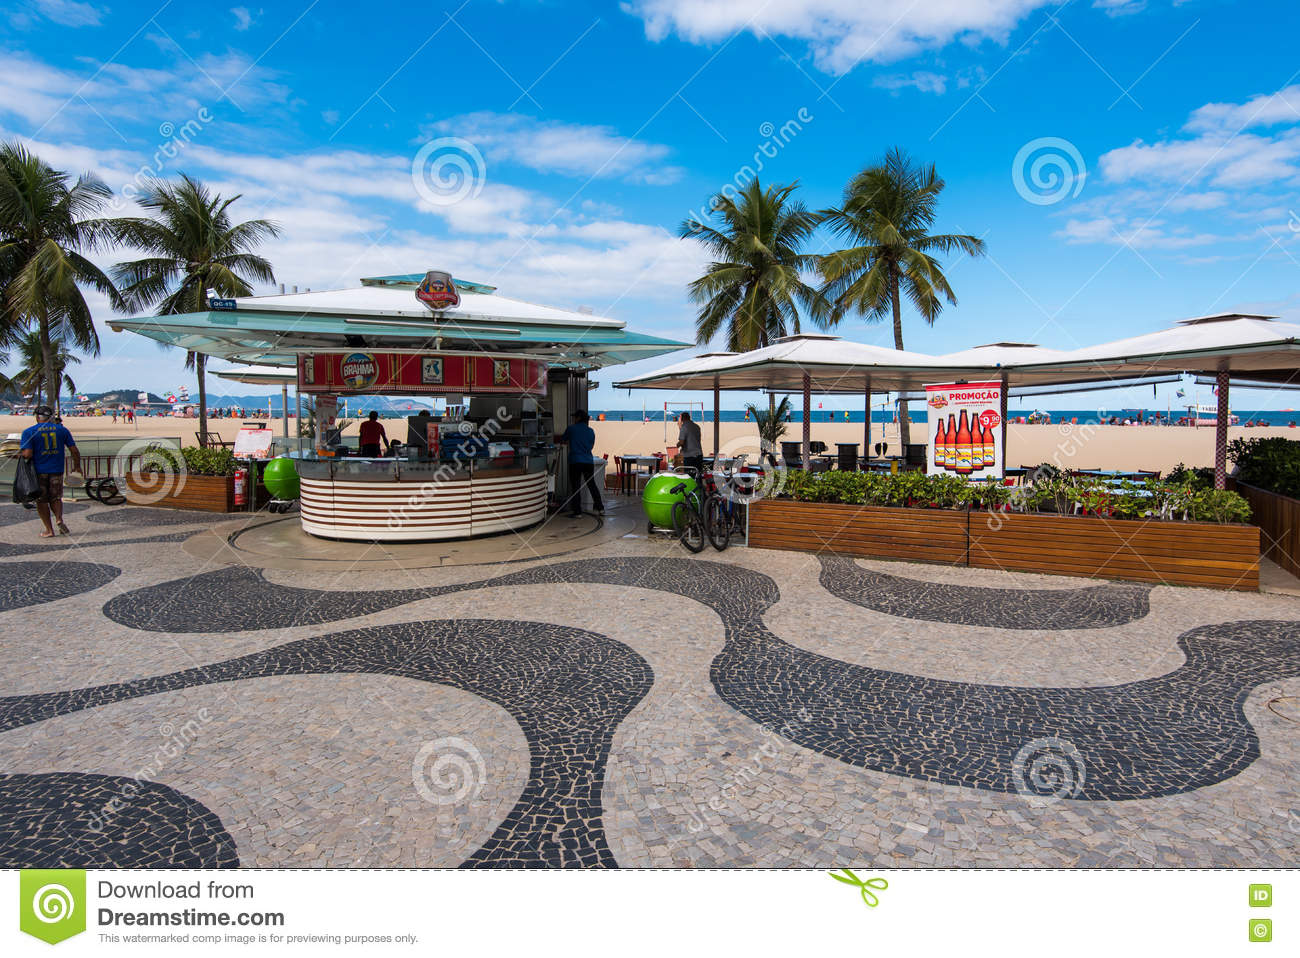 Kiosk in Copacabana